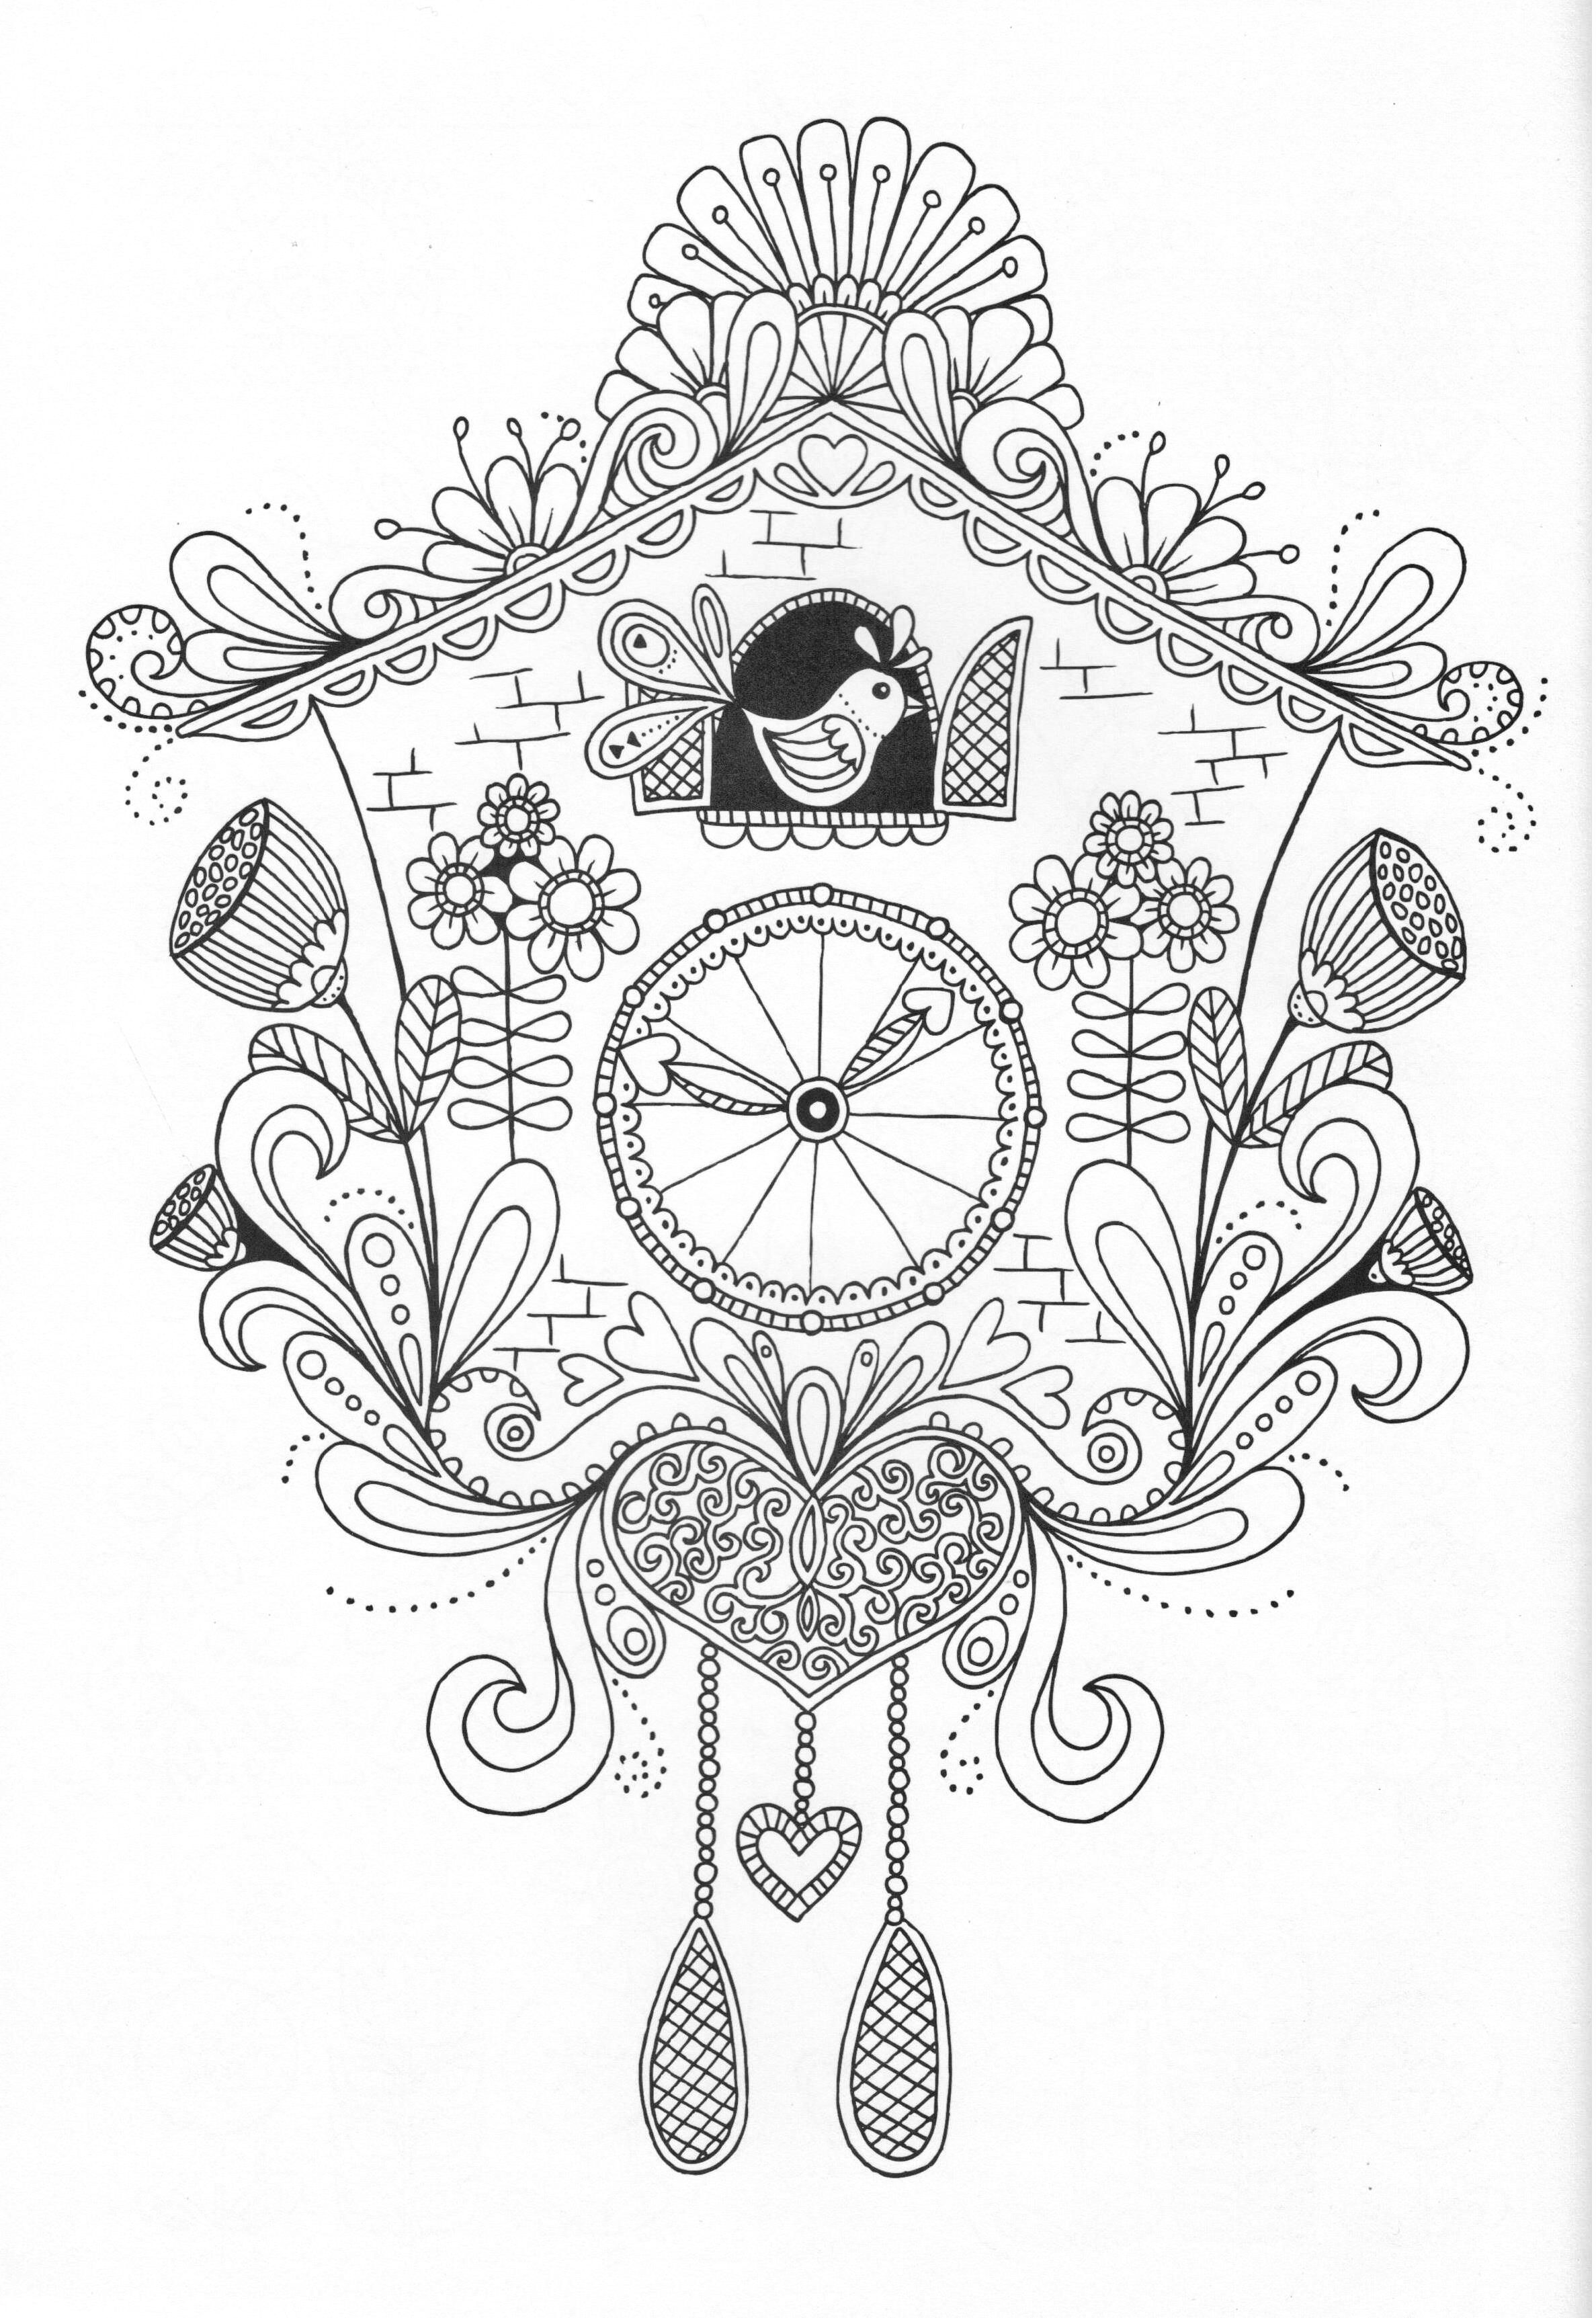 Coloring Pages For Grown Ups Pdf : Adult coloring page join my grown up group on